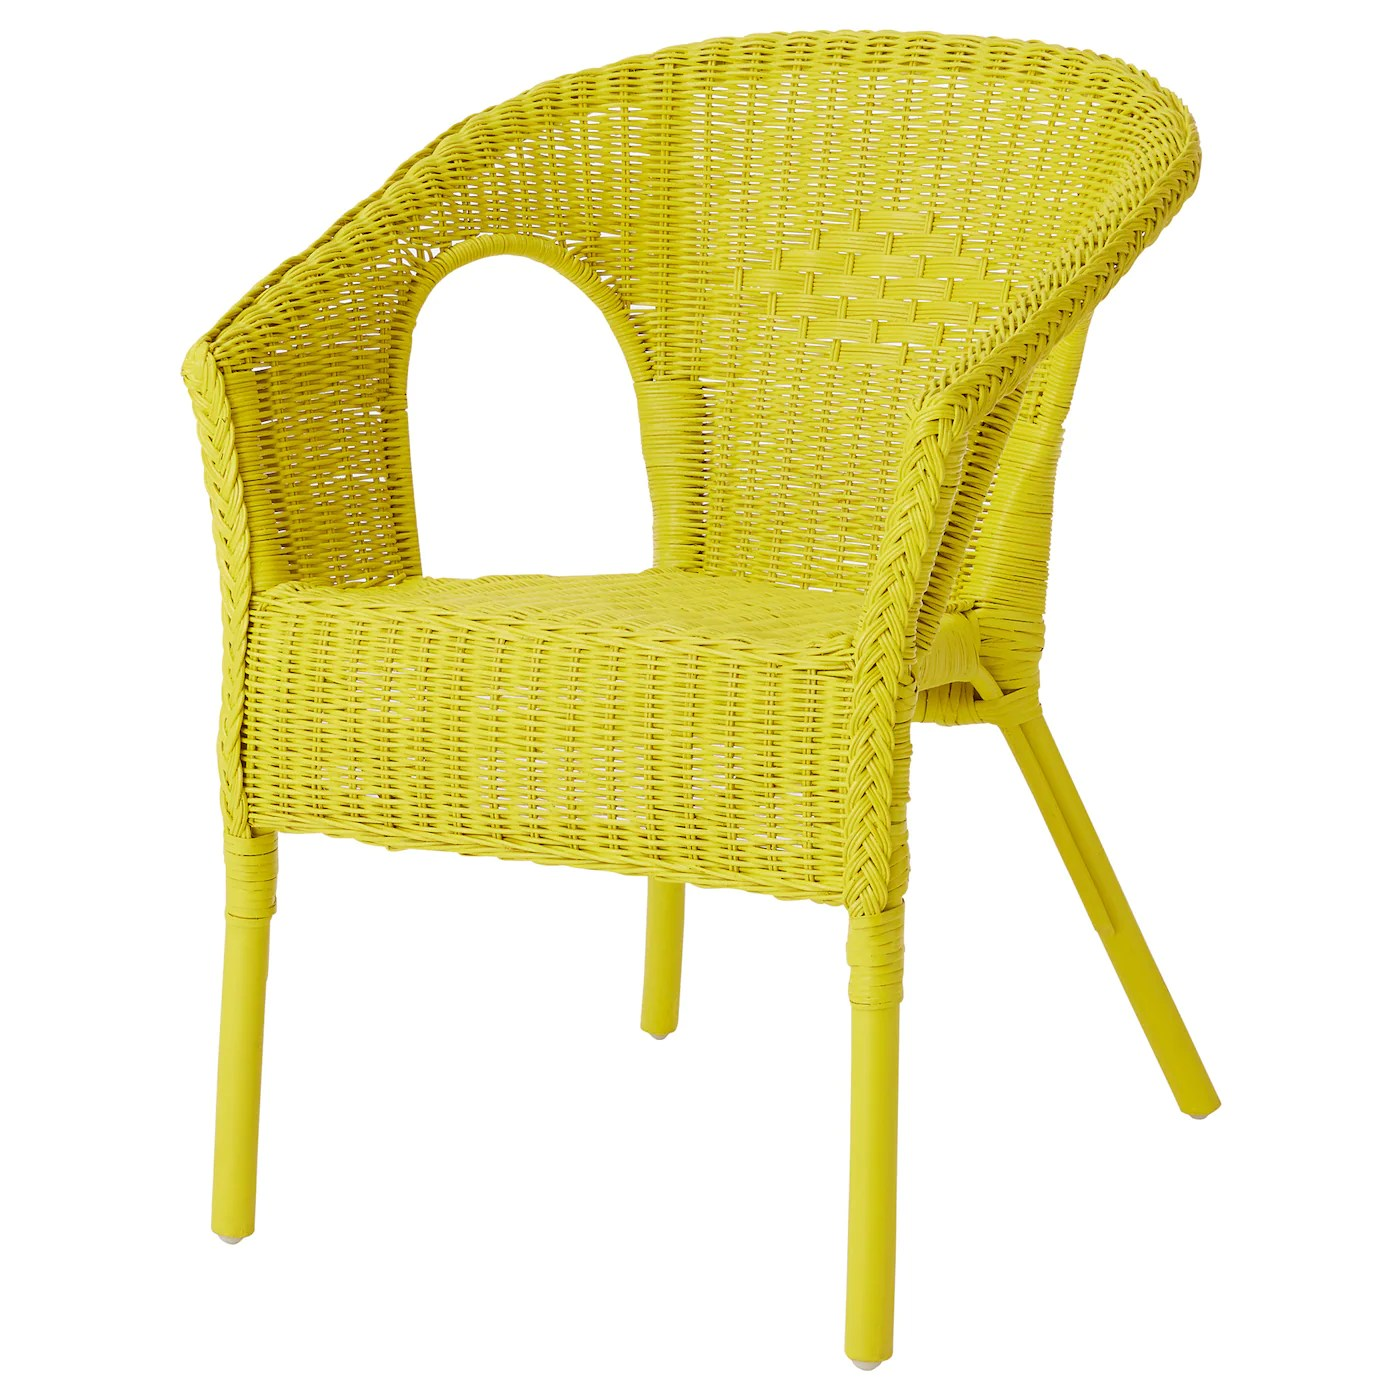 Ikea Rattan Chair Rattan And Wicker Chairs Ikea Ireland Dublin